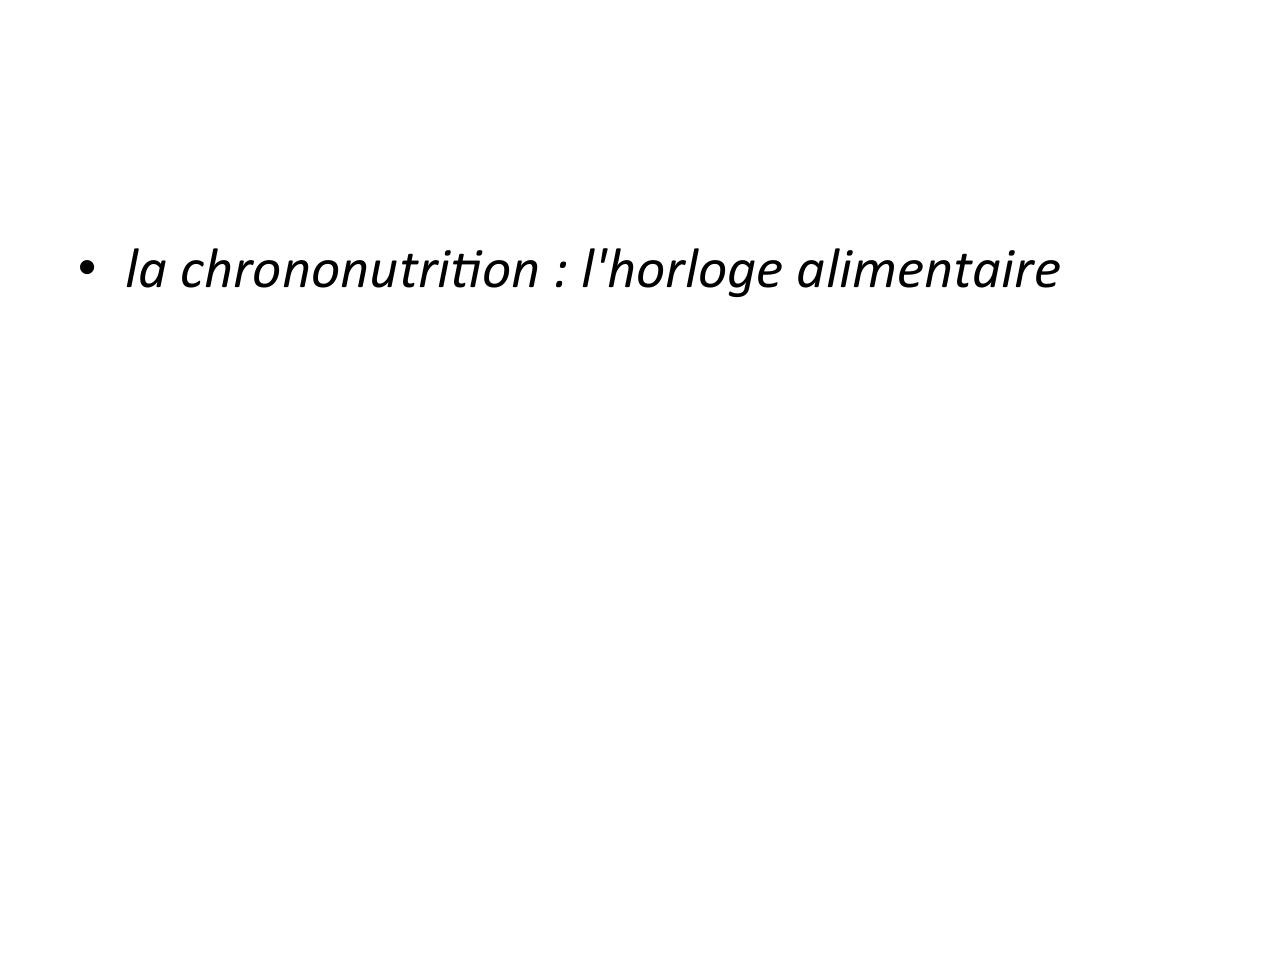 5application pratique chrononutrition - copie.pdf - page 3/34